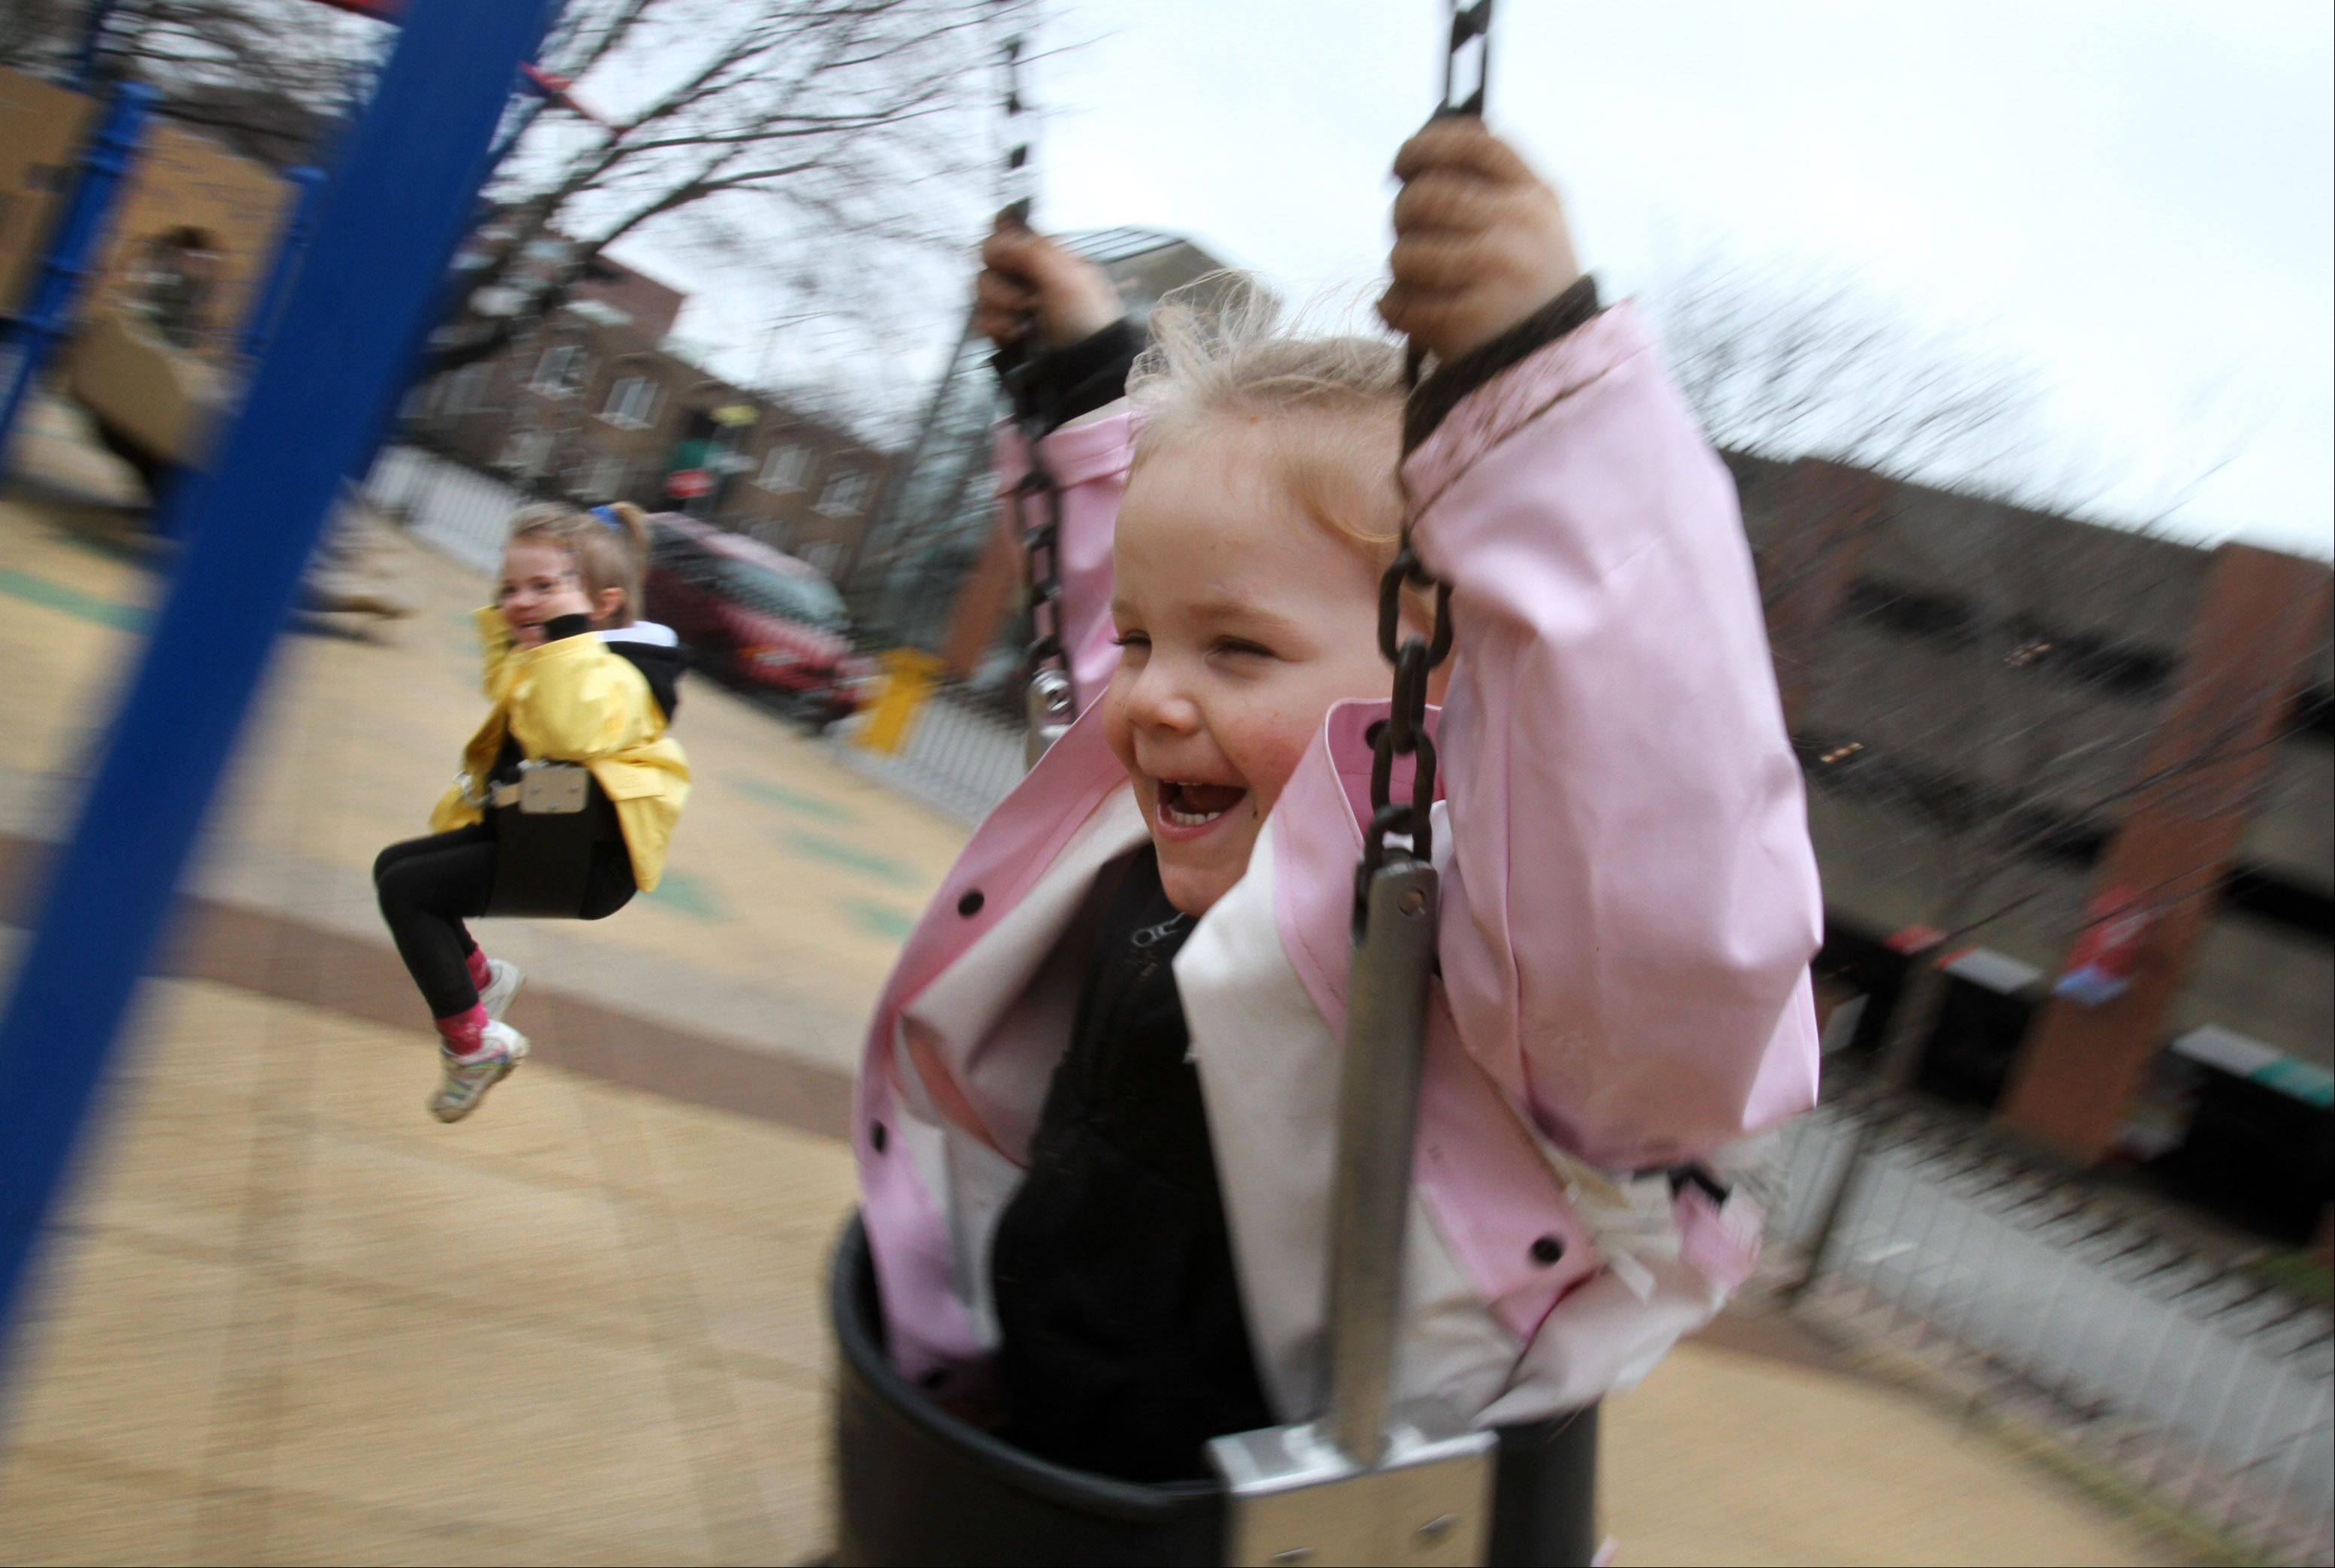 Three-year-old Madalynn Kerley with her sister Melody, 4, and mother Michelle, all of Palatine, enjoy the swing at North School Park in Arlington Heights .